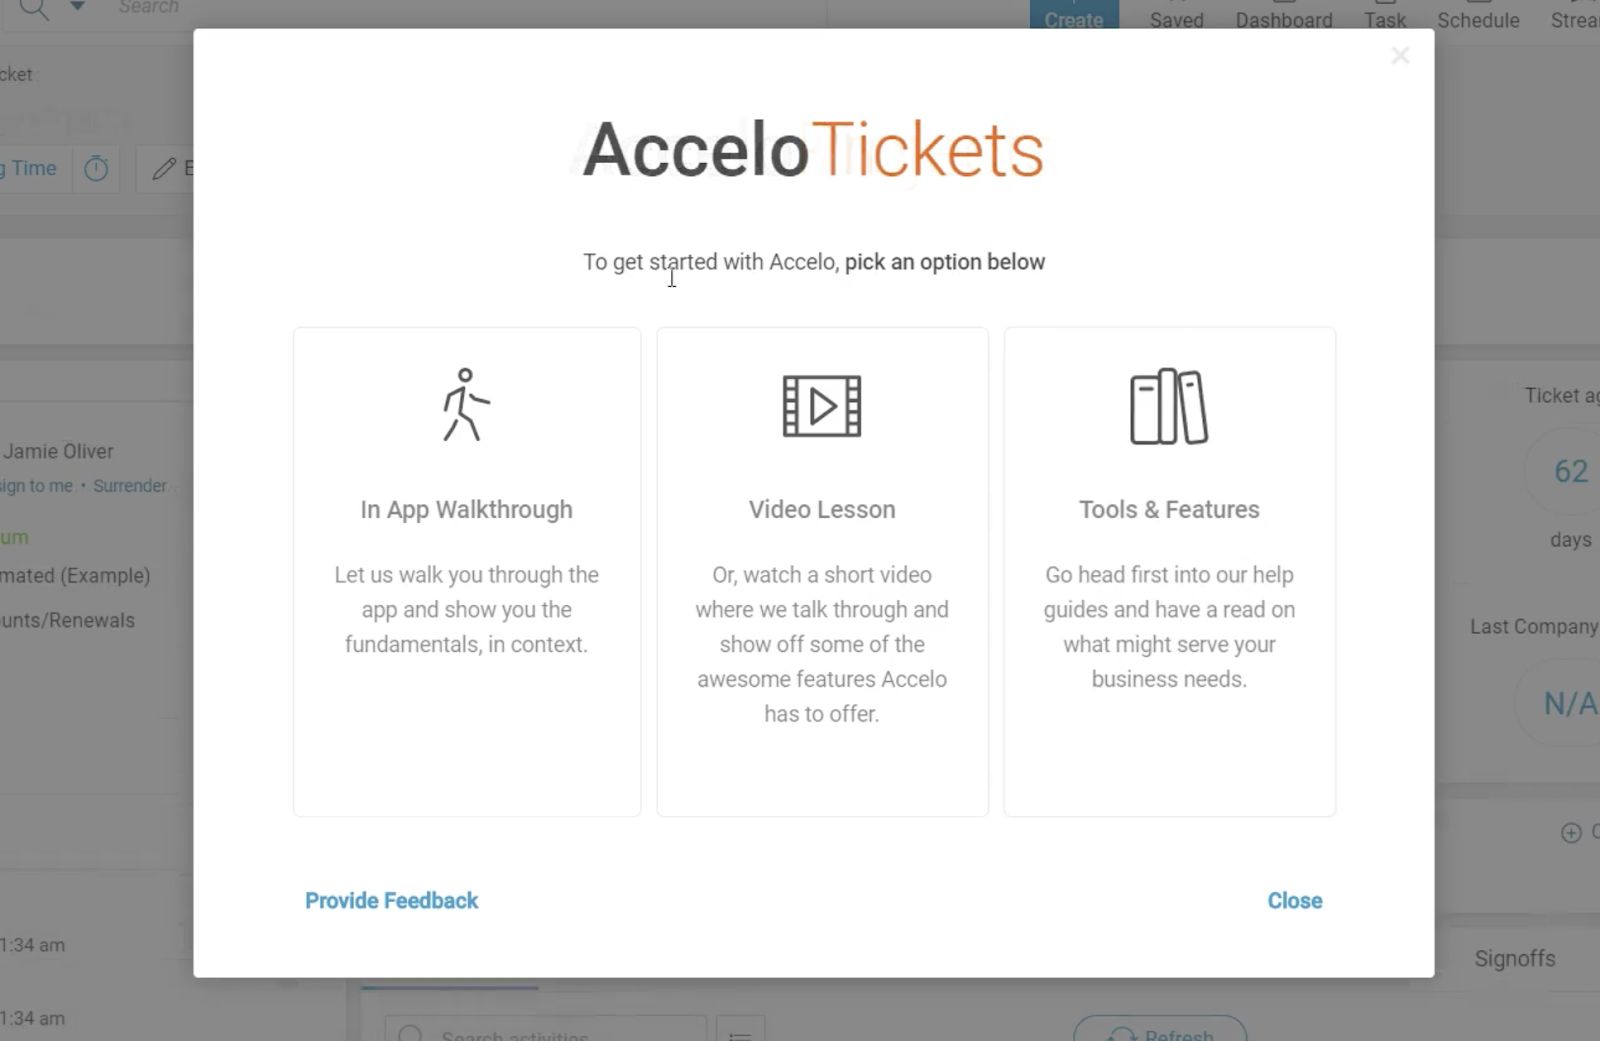 this is a screenshot image of a modal window with multiple button options: in-app walkthrough, video lesson, help guides, or provide feedback